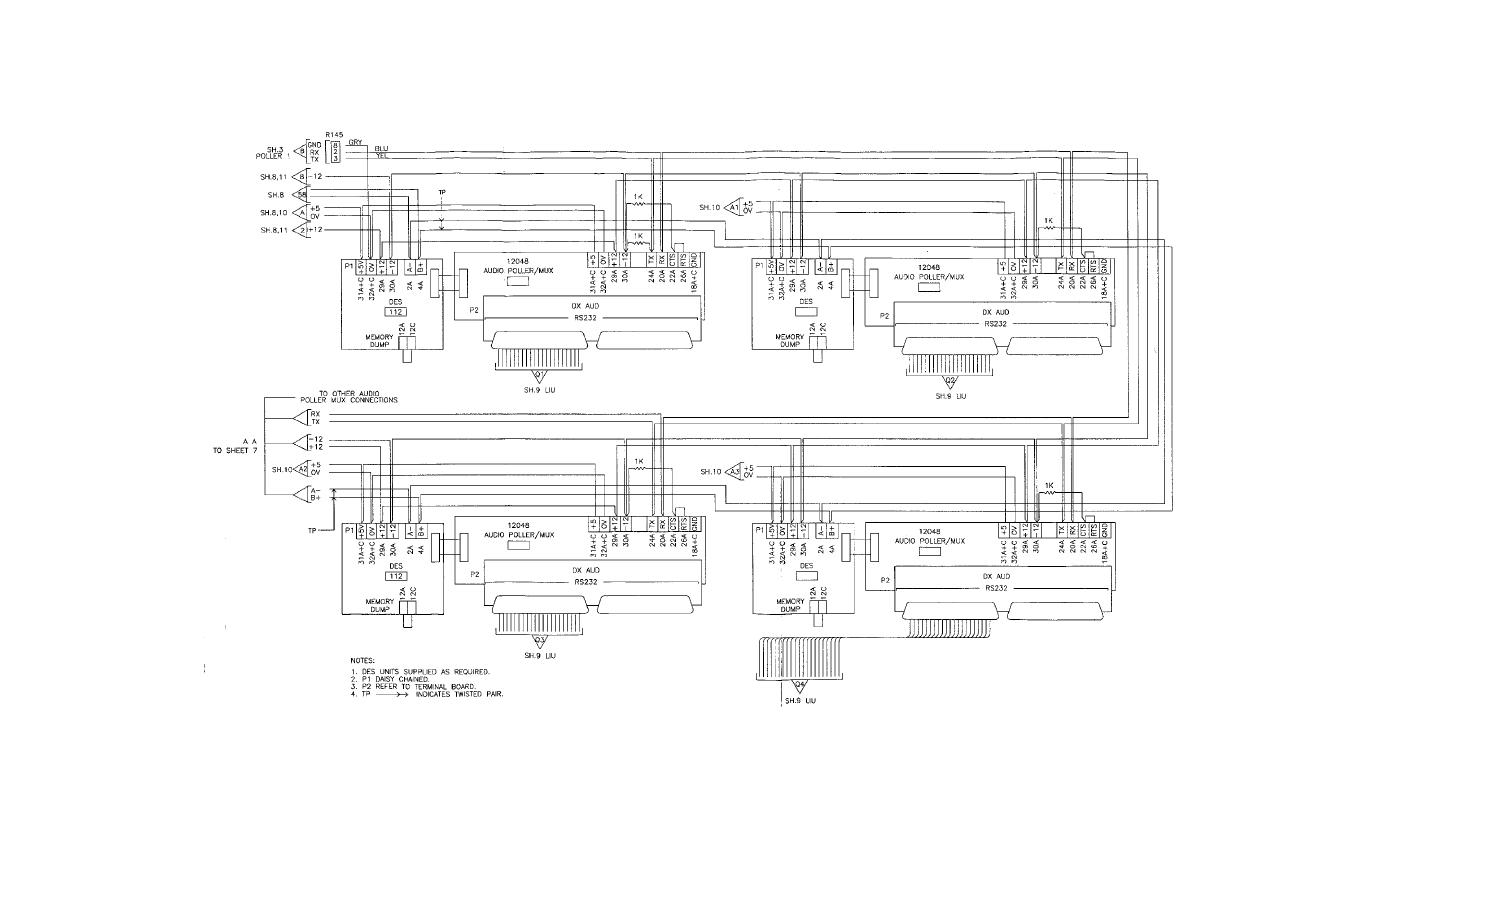 FO-2. PMC Functional Wiring Block Diagram (Sheet 5 of 11)